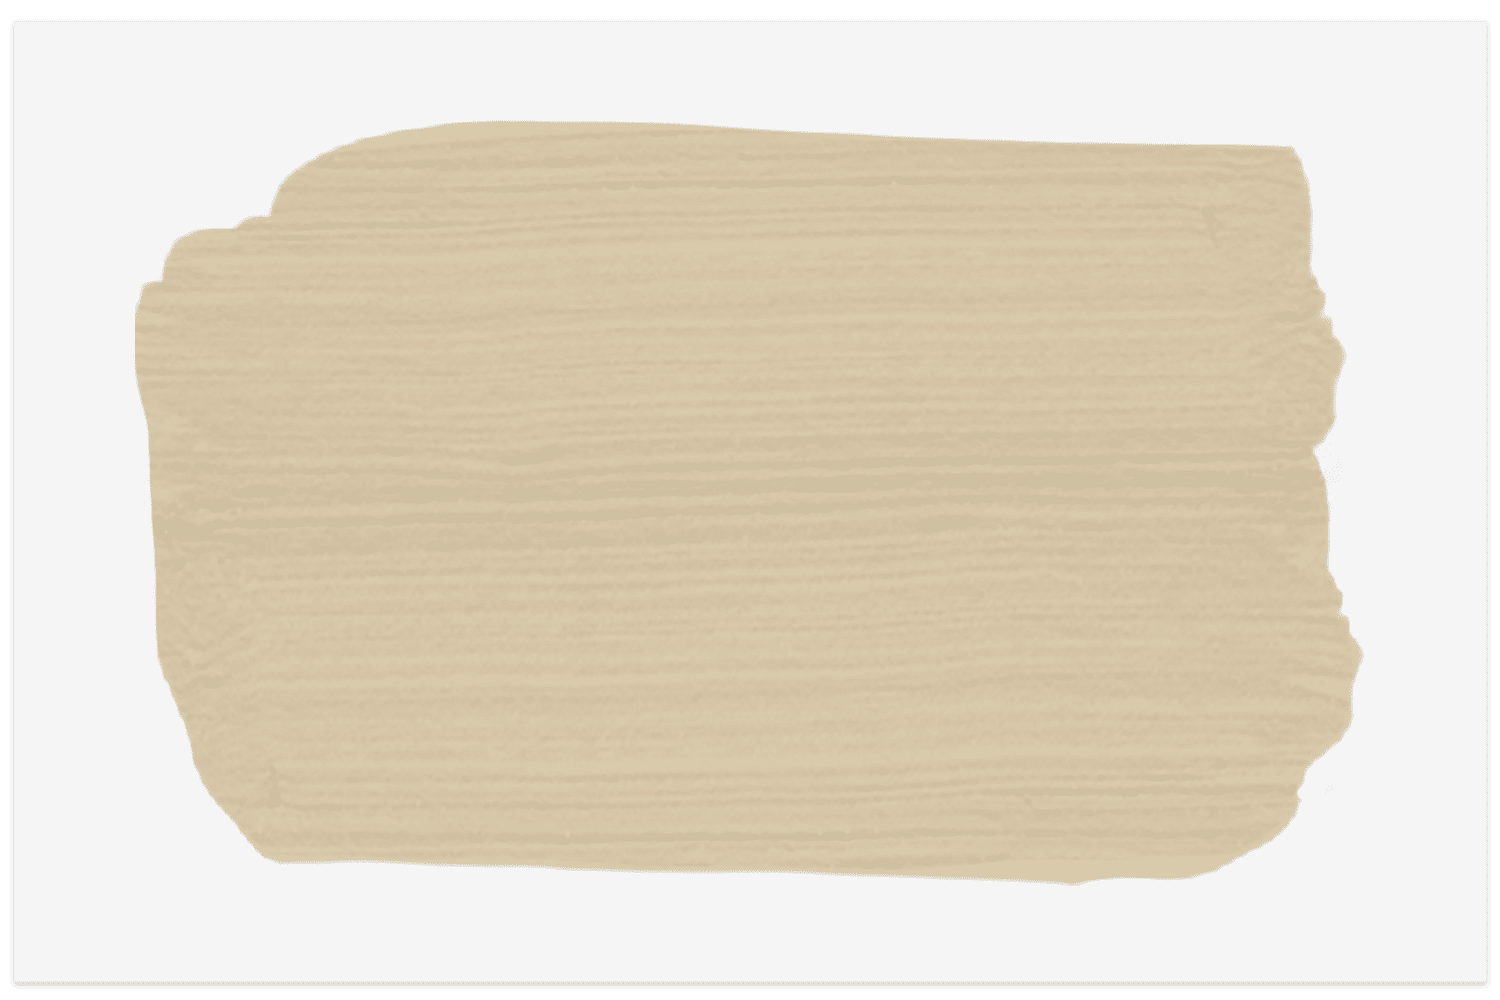 Farrow & Ball Stony Ground paint swatch